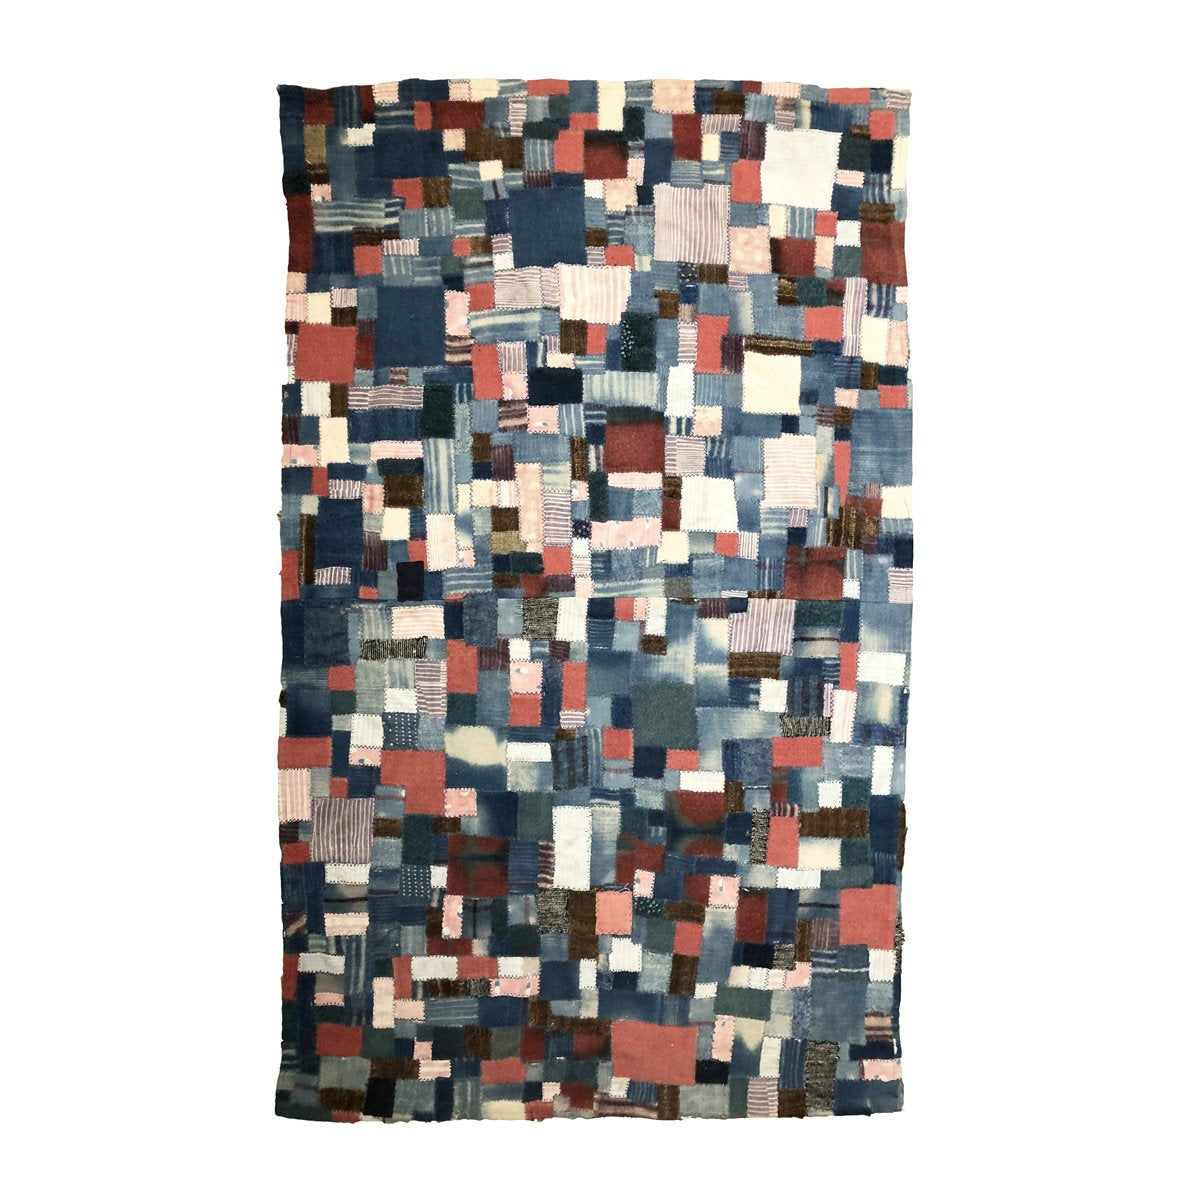 Reclaimed mini patch quilt composed from various weights and textures of mini patches in indigo, madder red, light charcoal, peach & ivory reclaimed fabric.